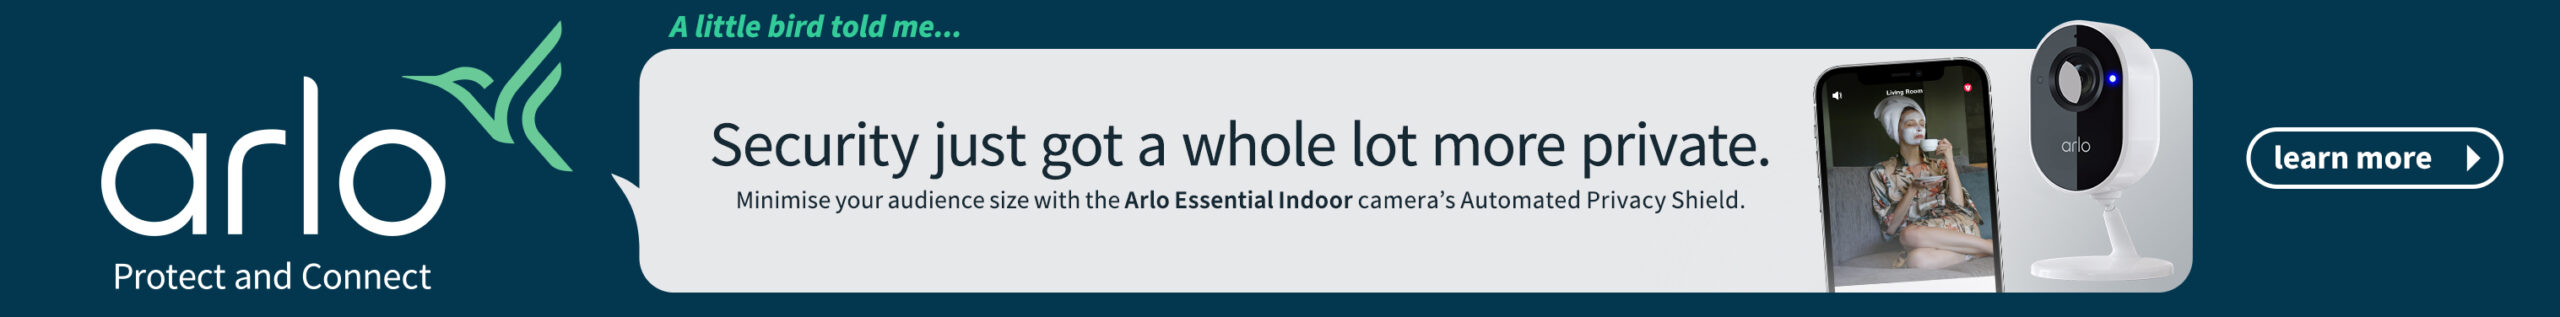 ARL0355 Arlo ESS Indoor Generic Banner 728x90 V4 scaled GoPro Working On 360 Degree Camera